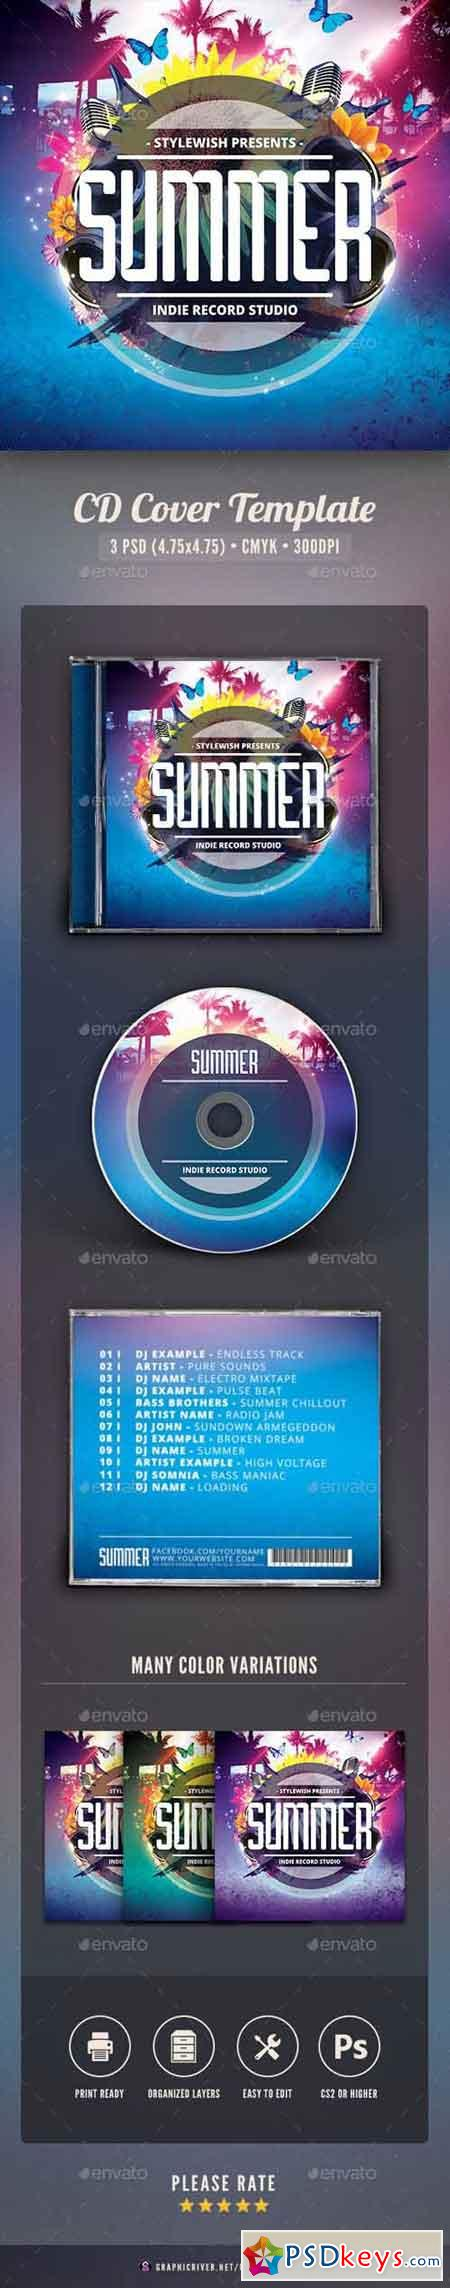 Summer CD Cover Artwork 16043948